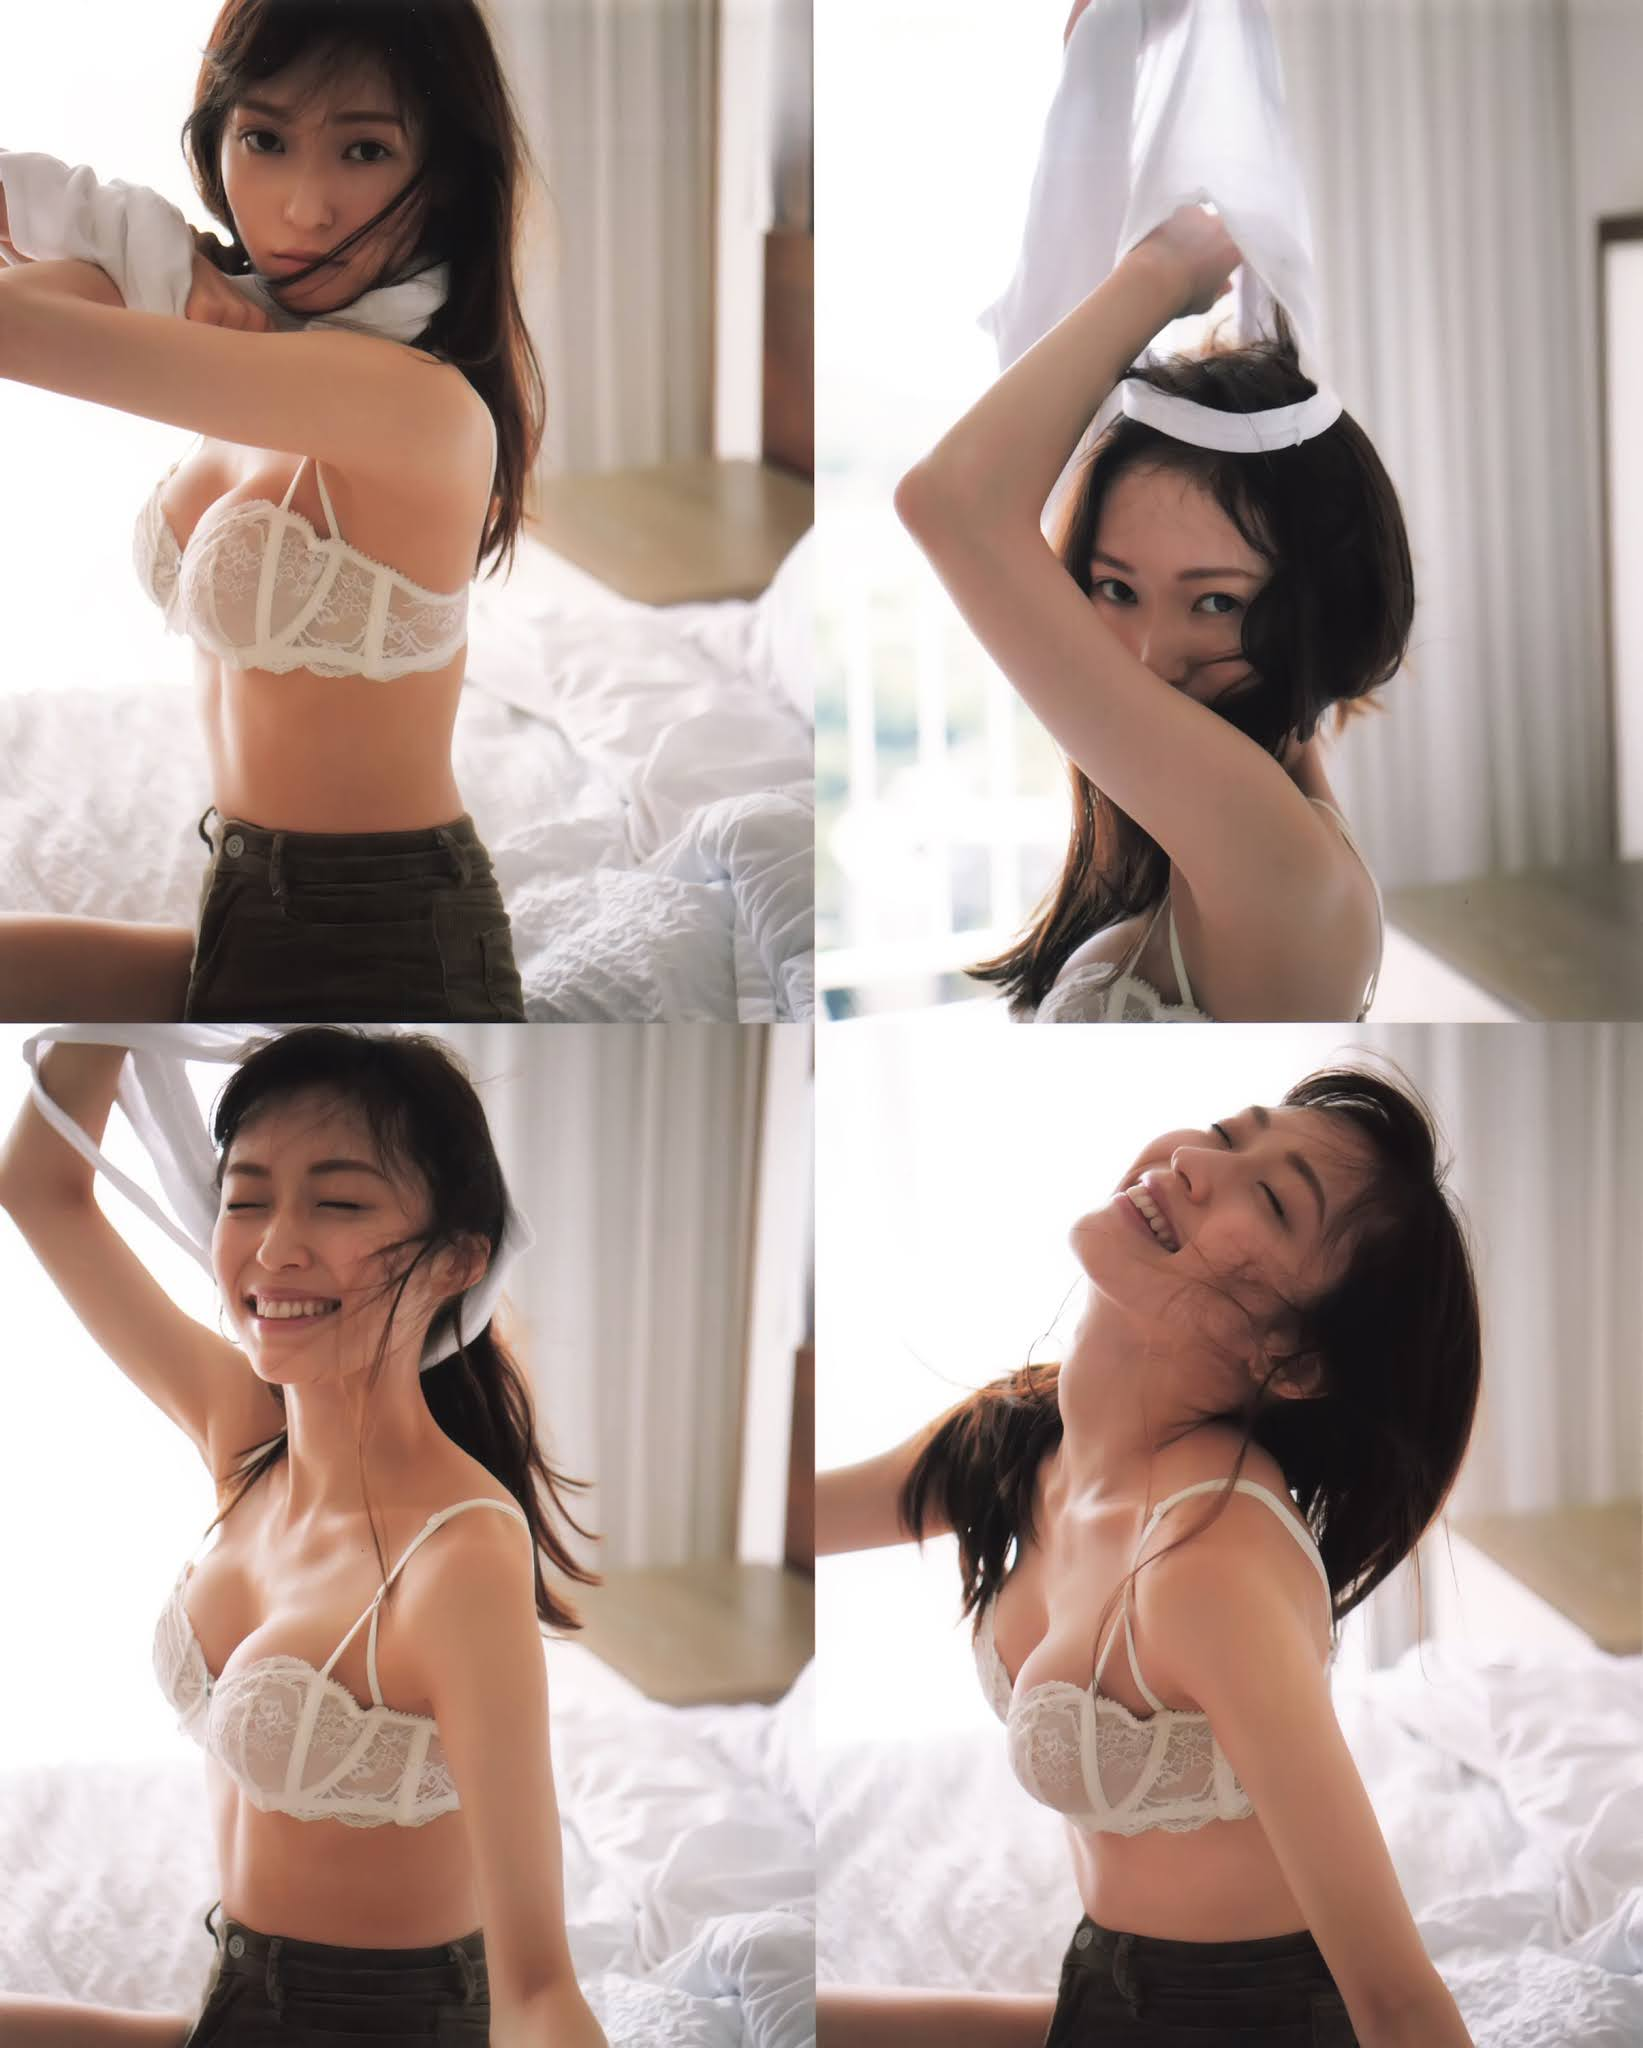 23yearold body fascinated in Hawaii Maho Yamaguchi123